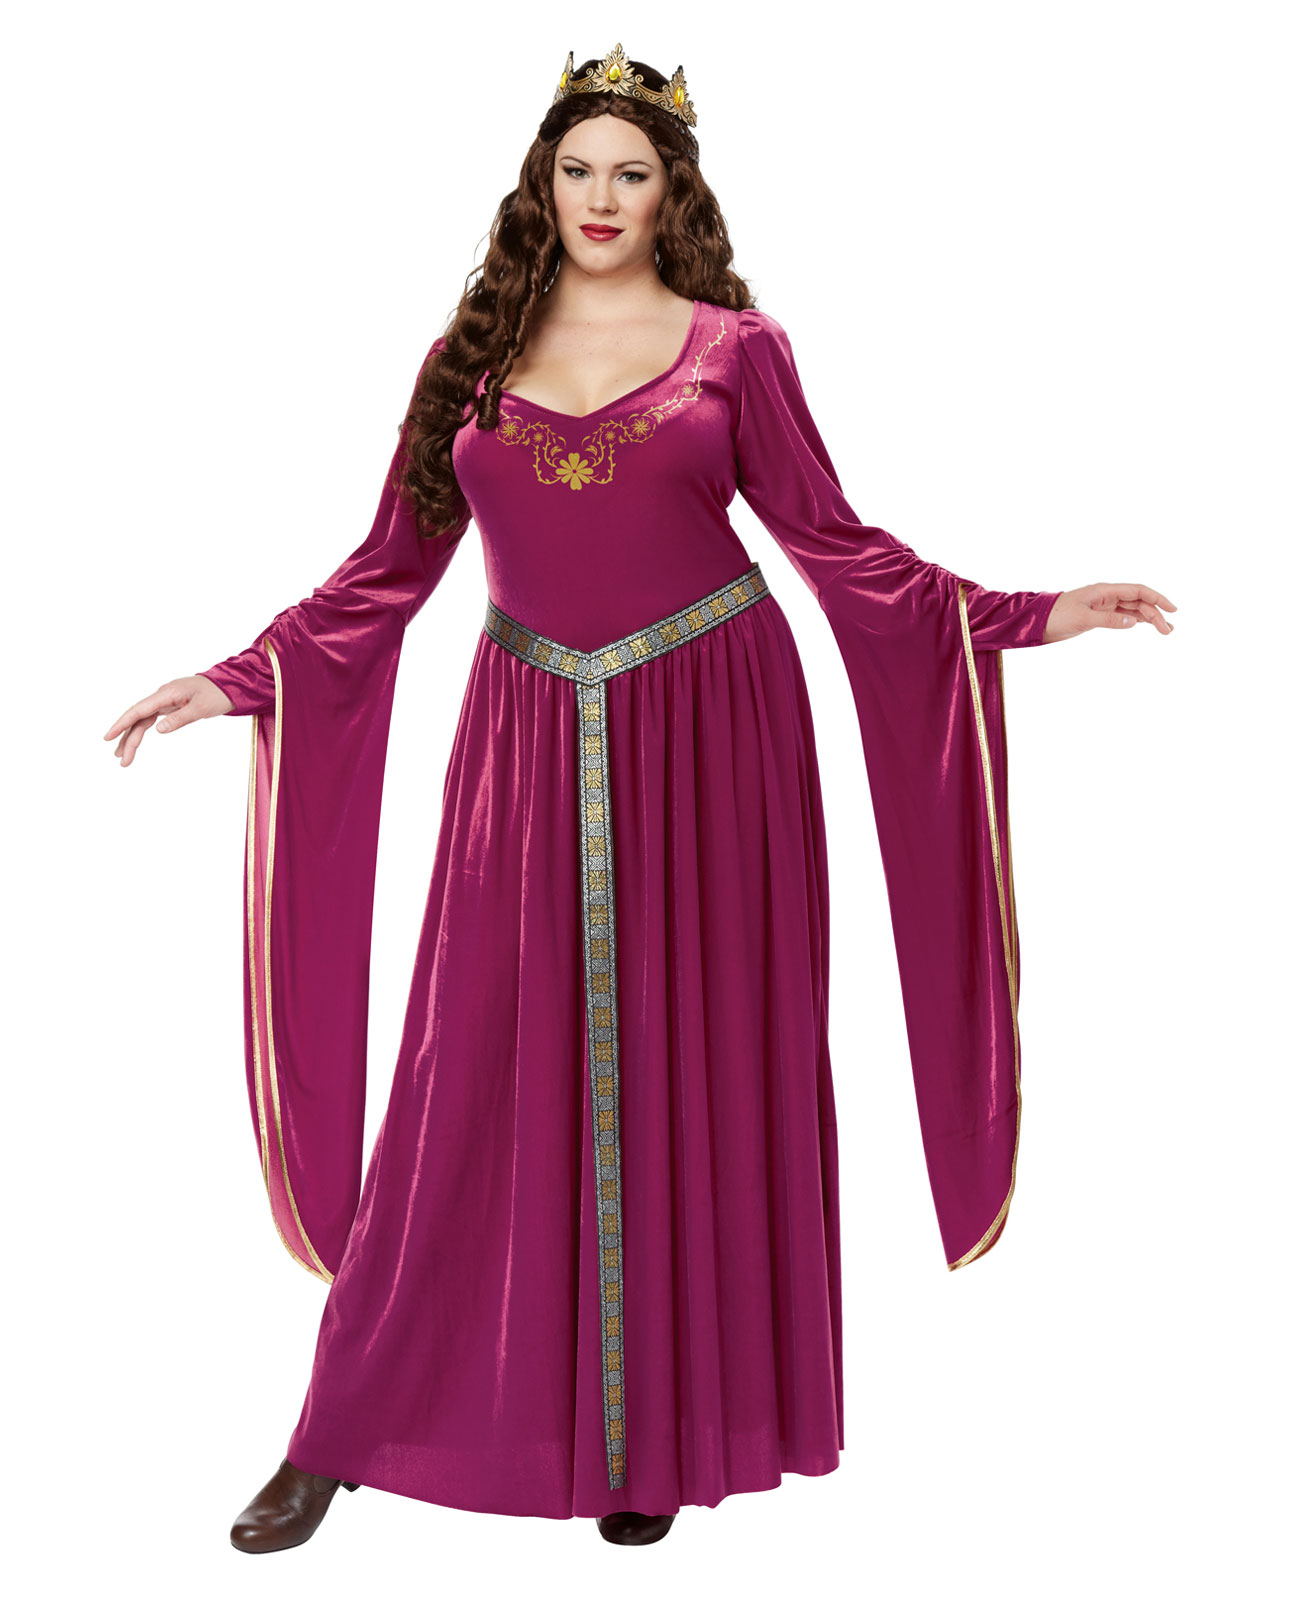 Renaissance Dress Plus Size: Women's Medieval Renaissance Game Of Thrones Long Pink